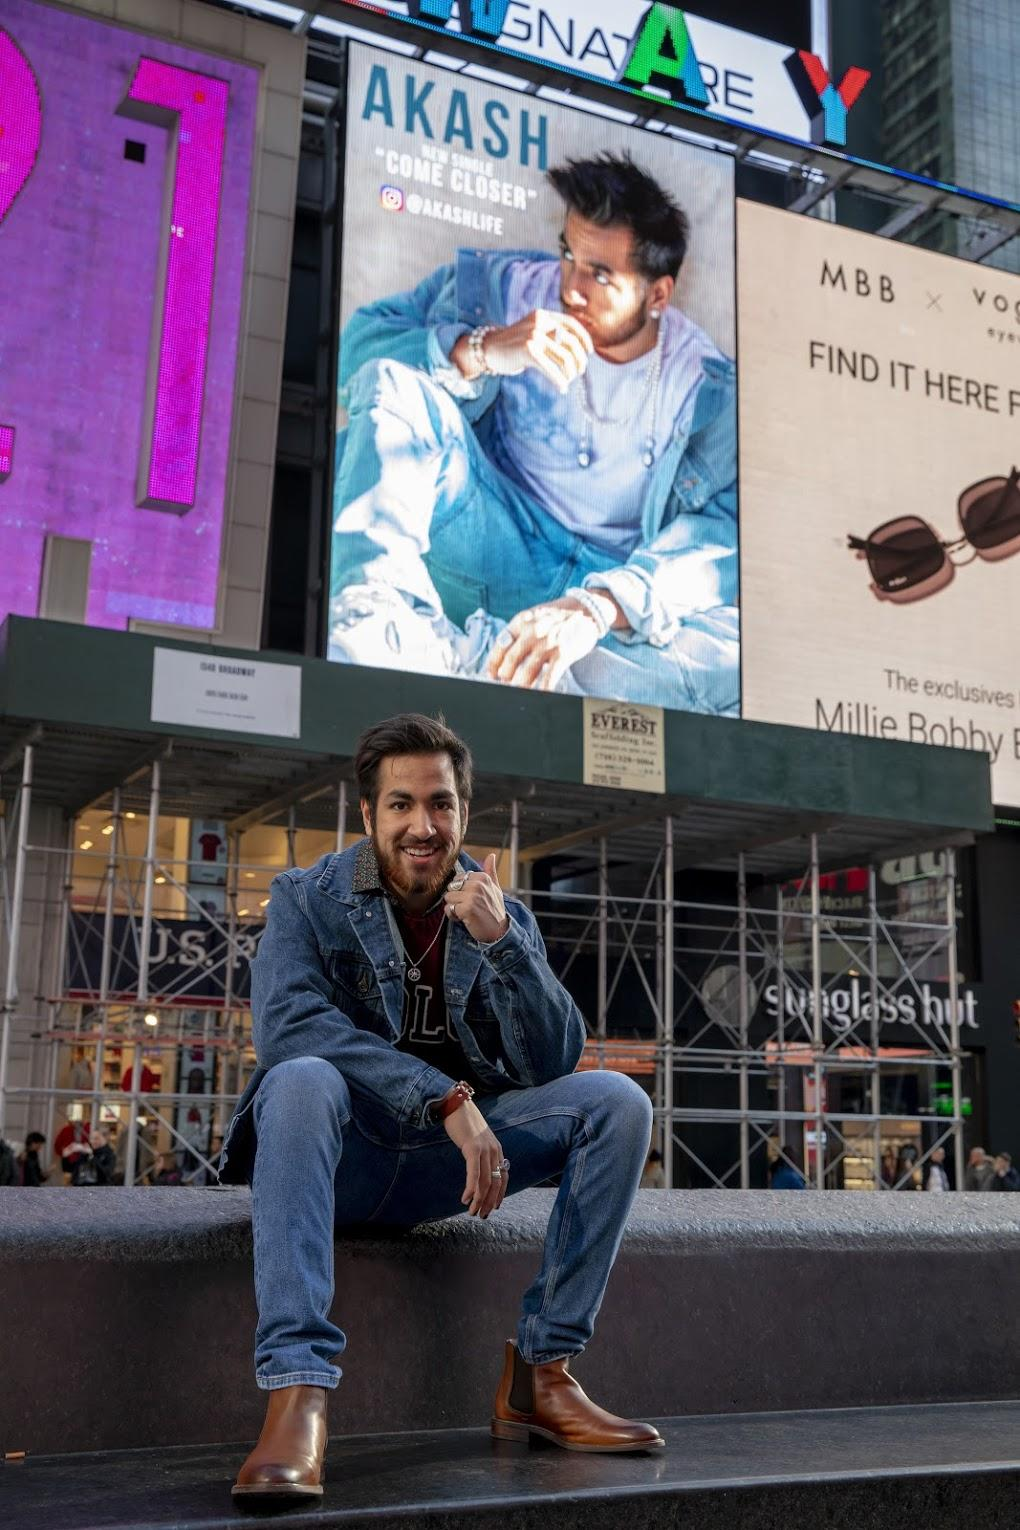 Pictures of Akash Ahuja, the first Indian artist with a billboard in Times Square